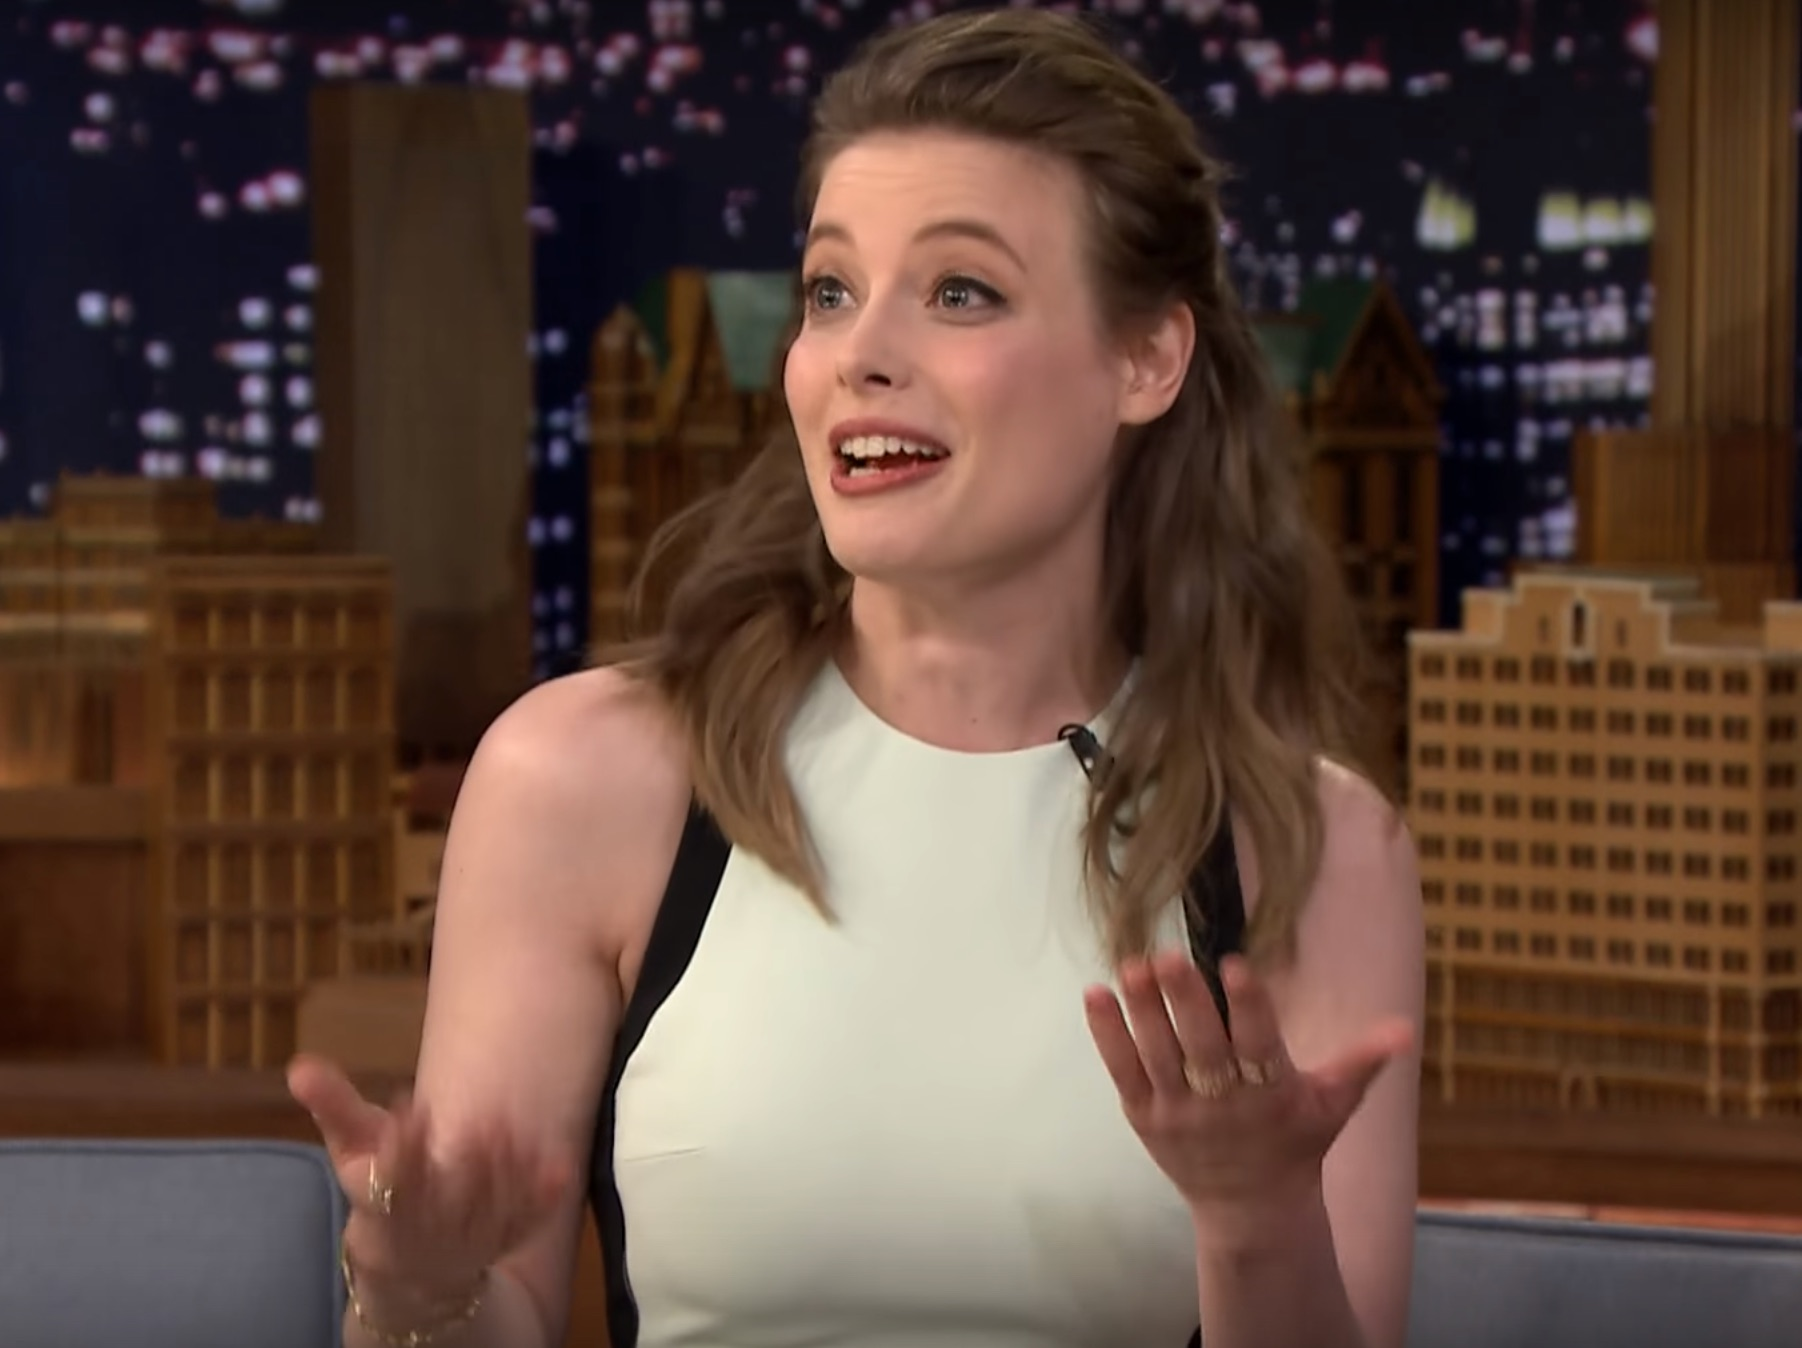 Gillian Jacobs wants us all to learn computer science